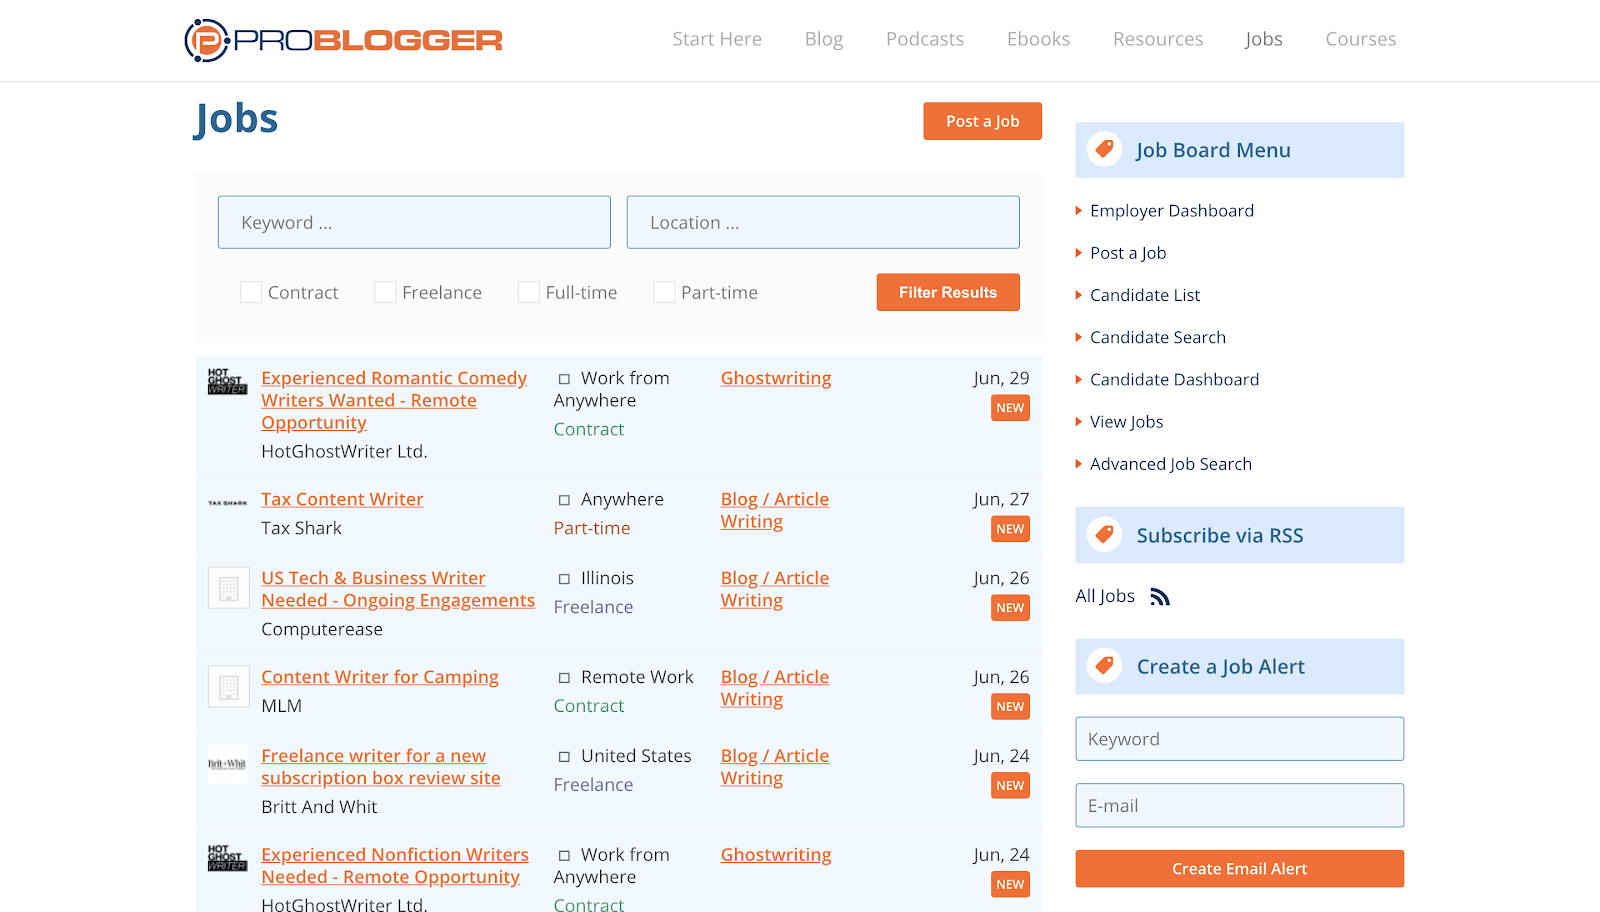 Find Freelance Writing Jobs on Problogger